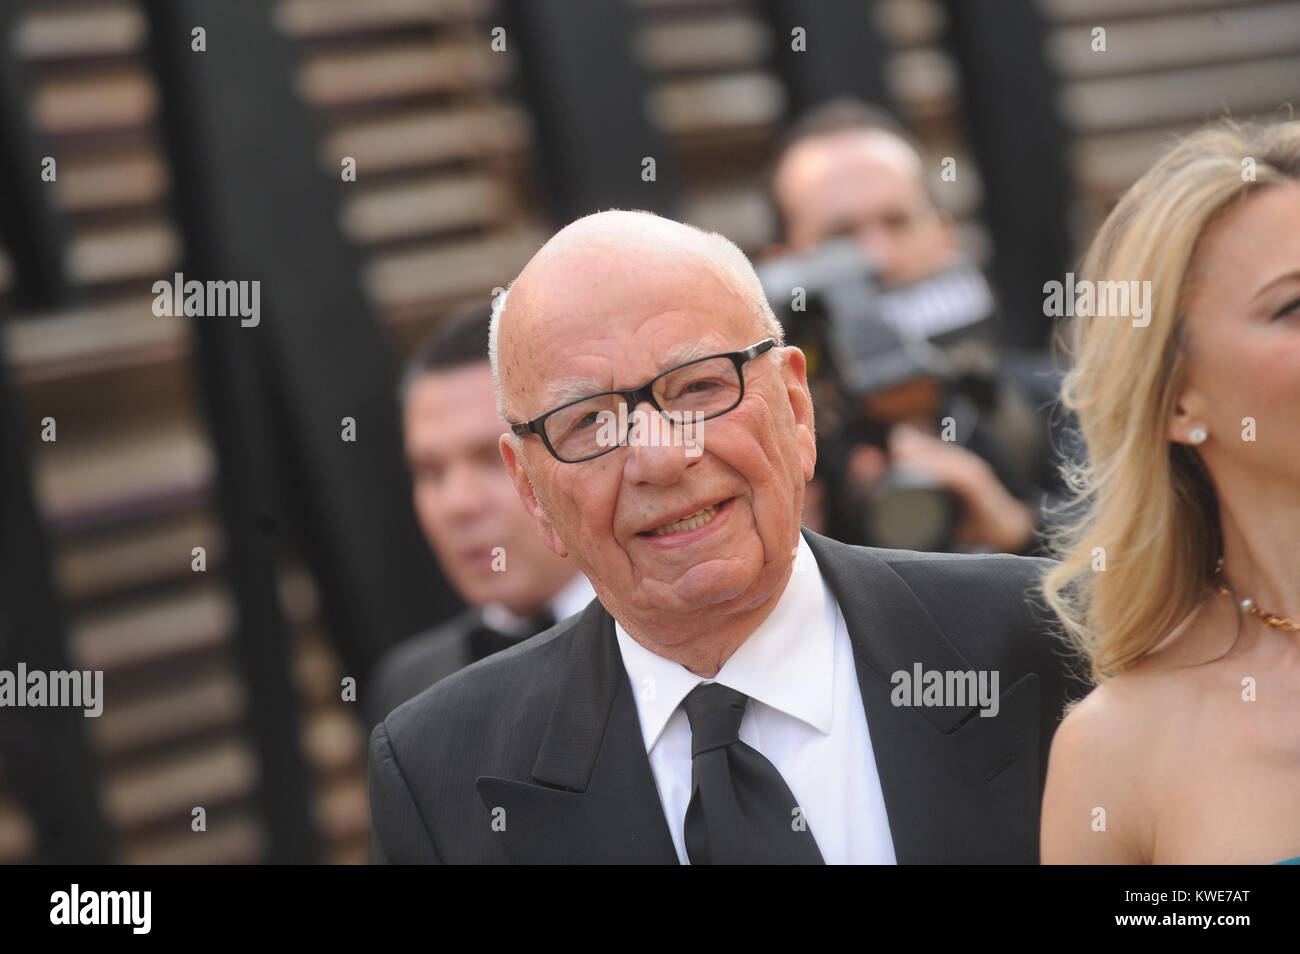 WEST HOLLYWOOD, CA - MARCH 02:  Rupert Murdoch attends the 2014 Vanity Fair Oscar Party hosted by Graydon Carter - Stock Image